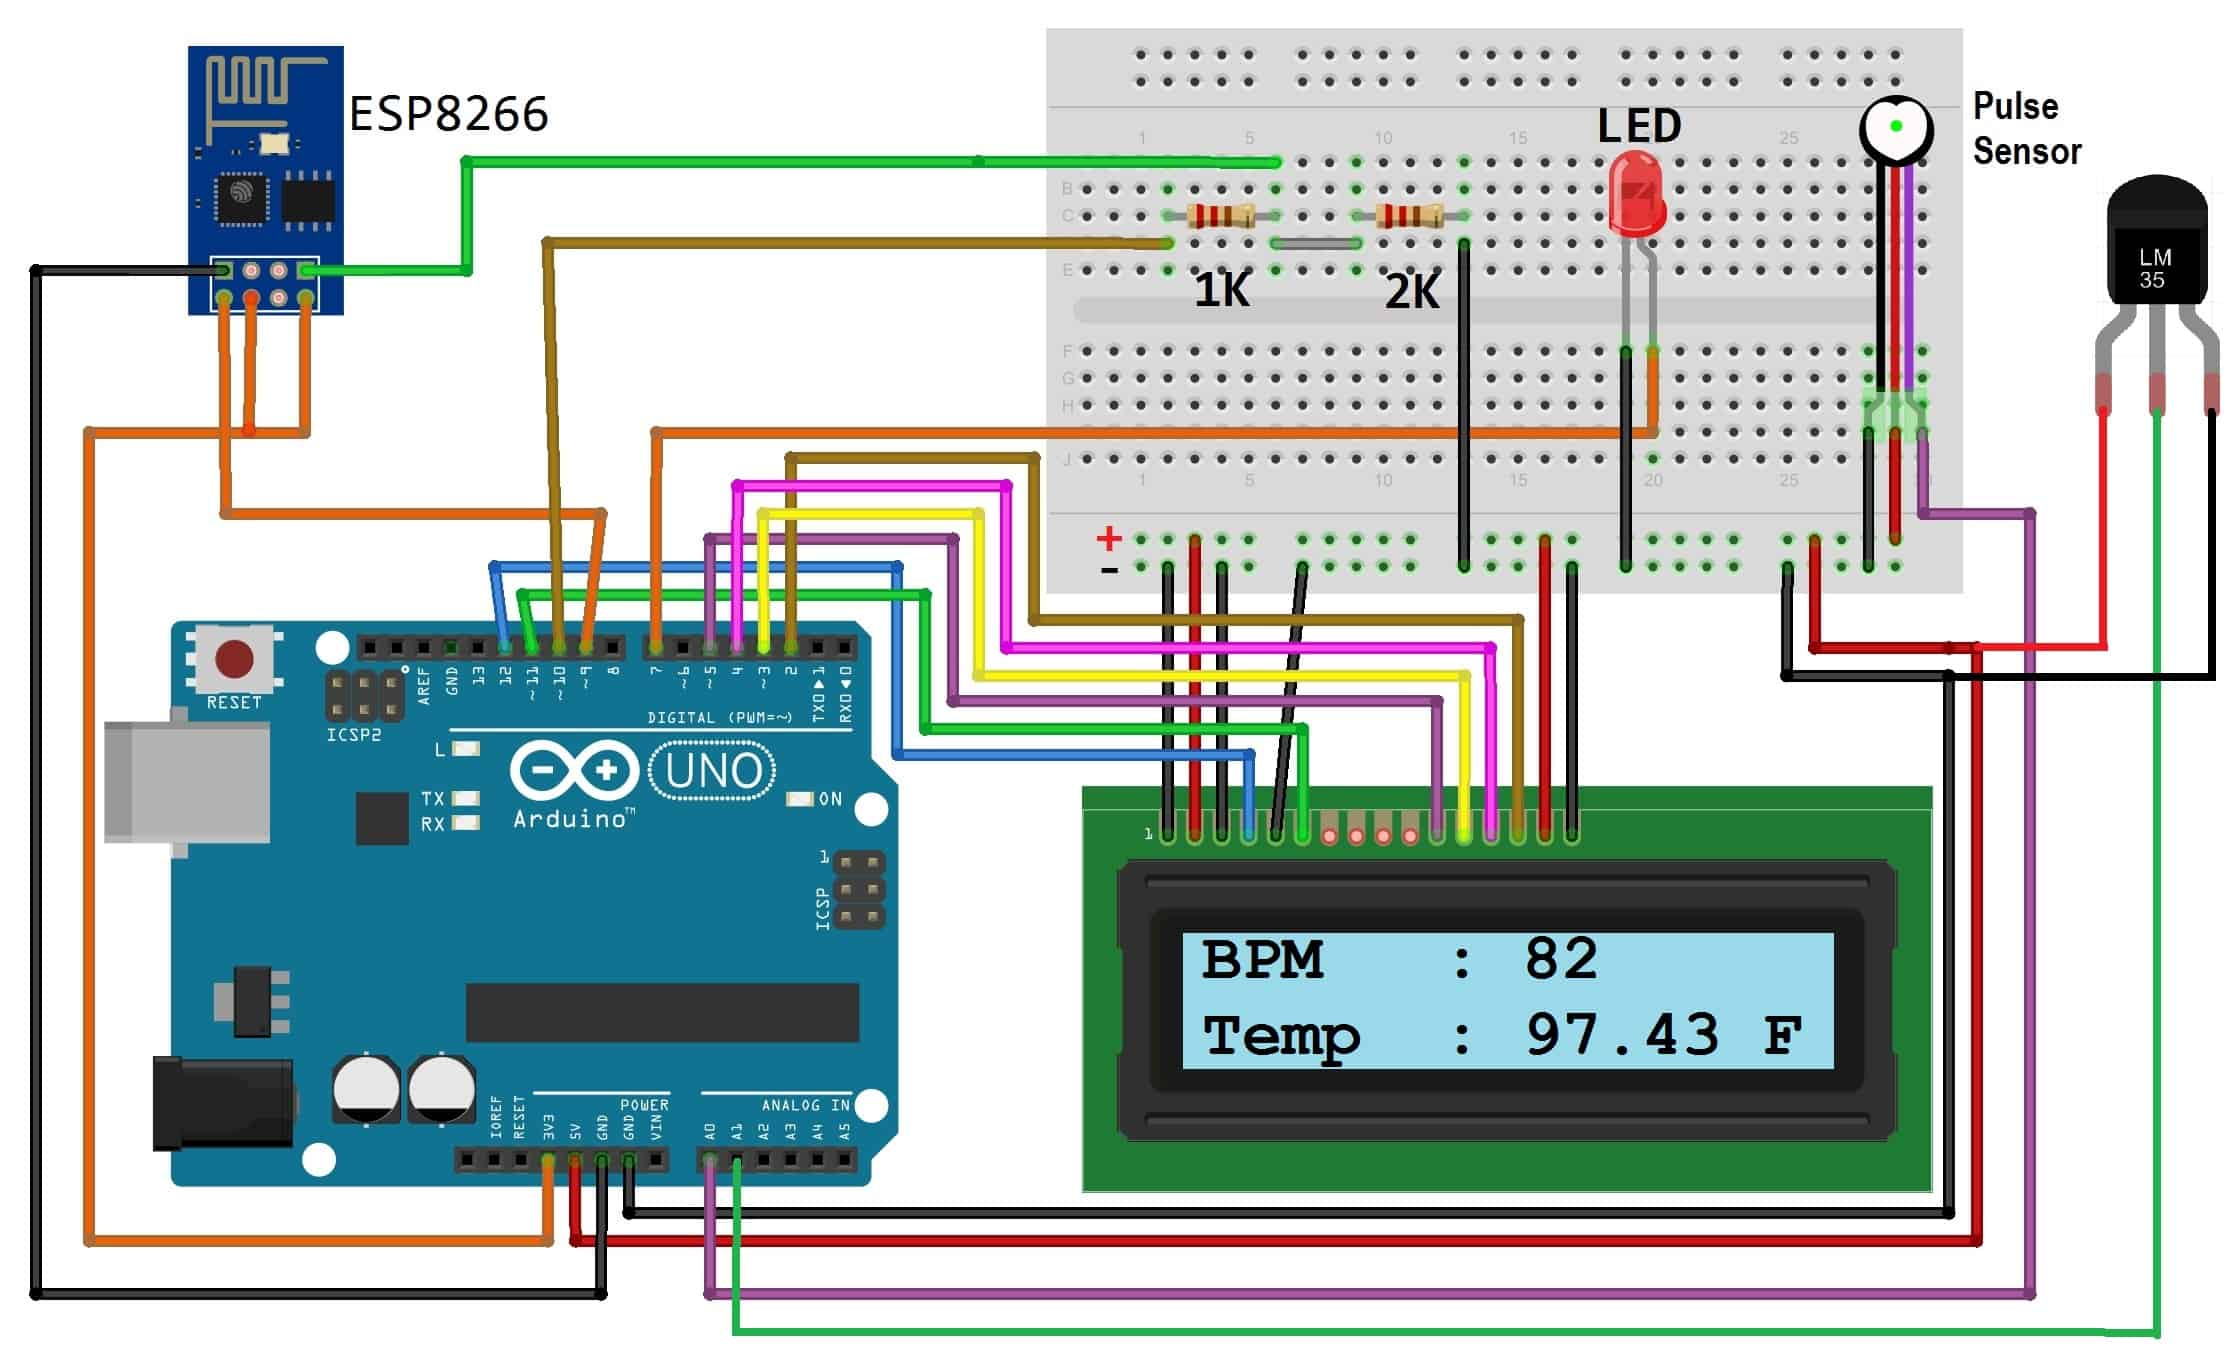 IoT Based Patient Health Monitoring System using ESP8266